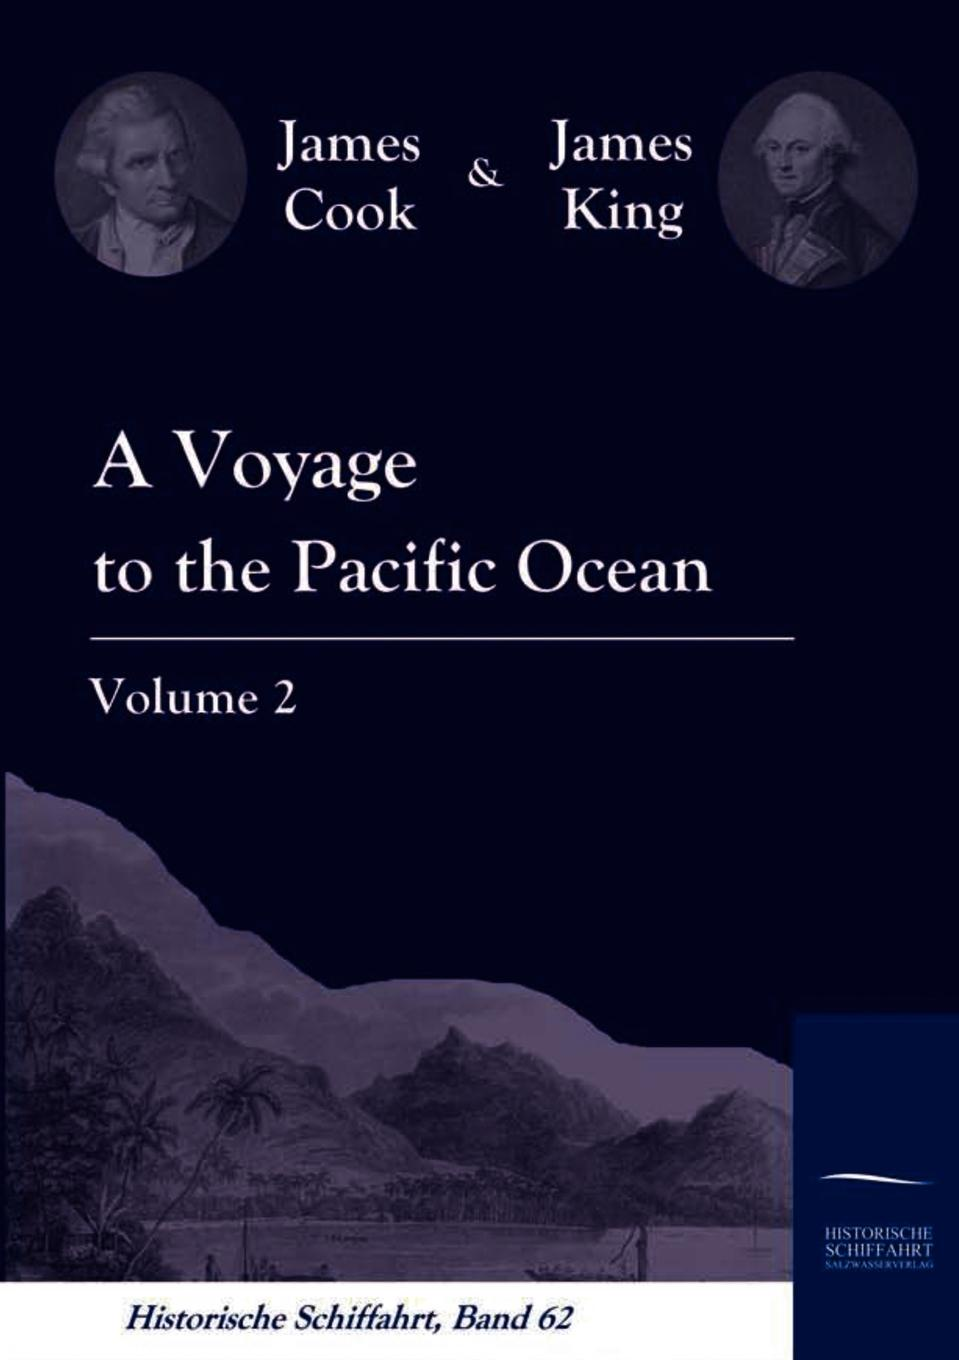 James Cook, James King A Voyage to the Pacific Ocean Vol. 2